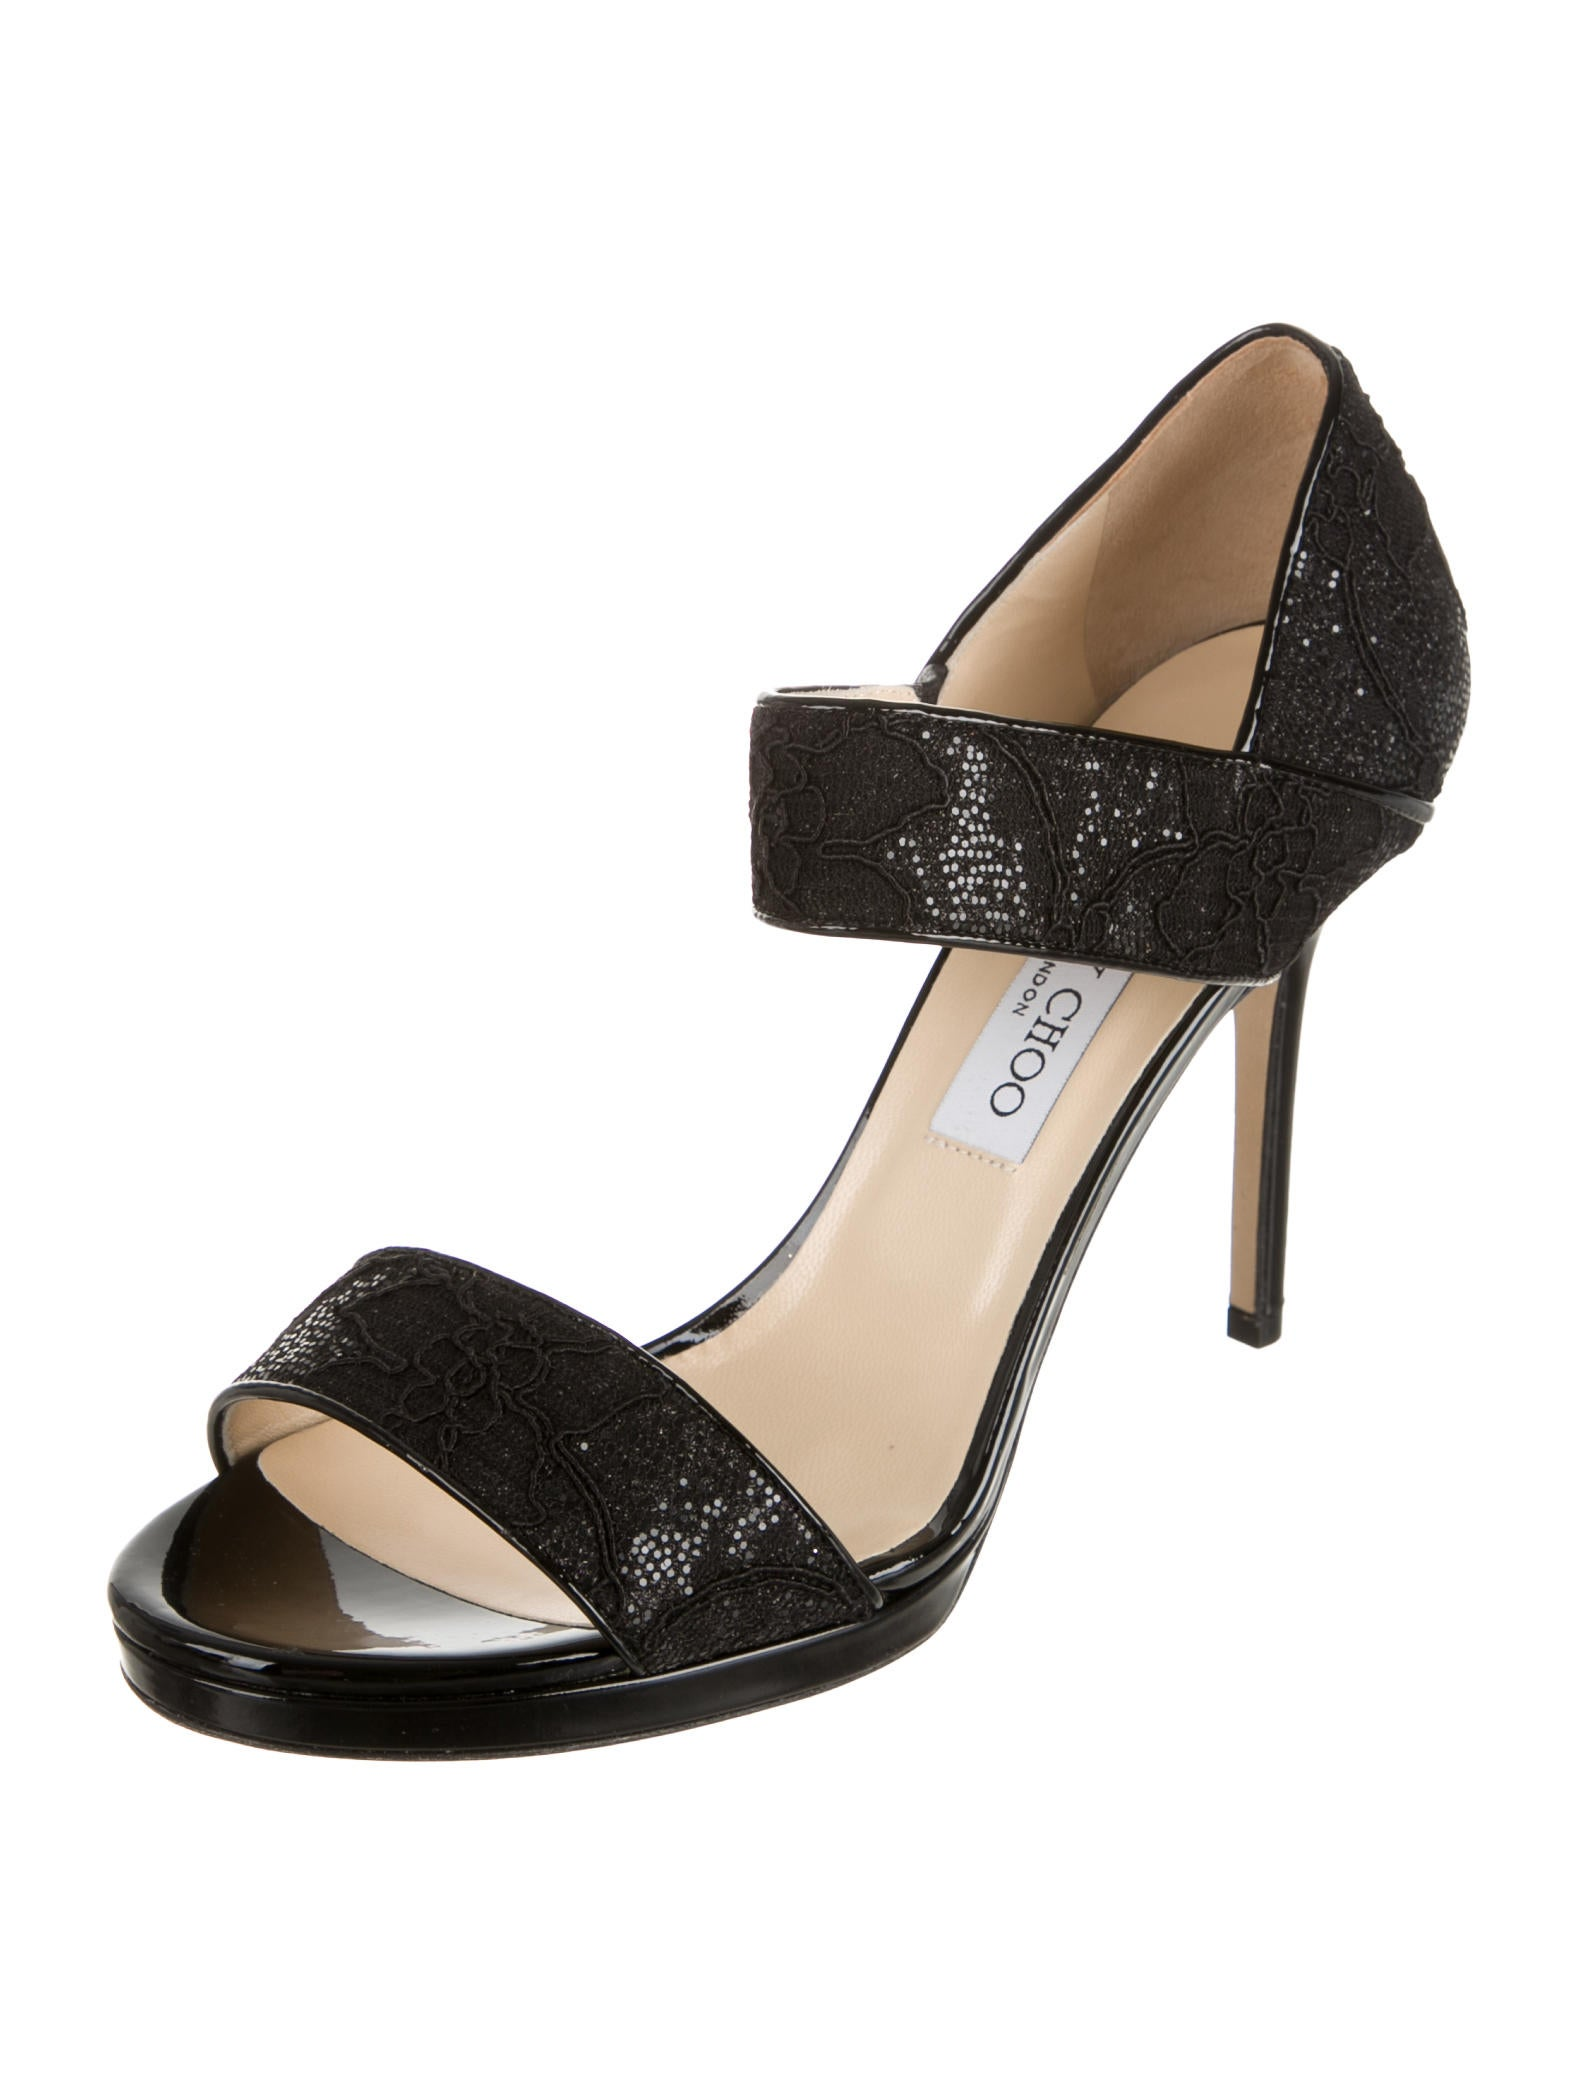 jimmy choo black glitter sandals shoes jim43100 the